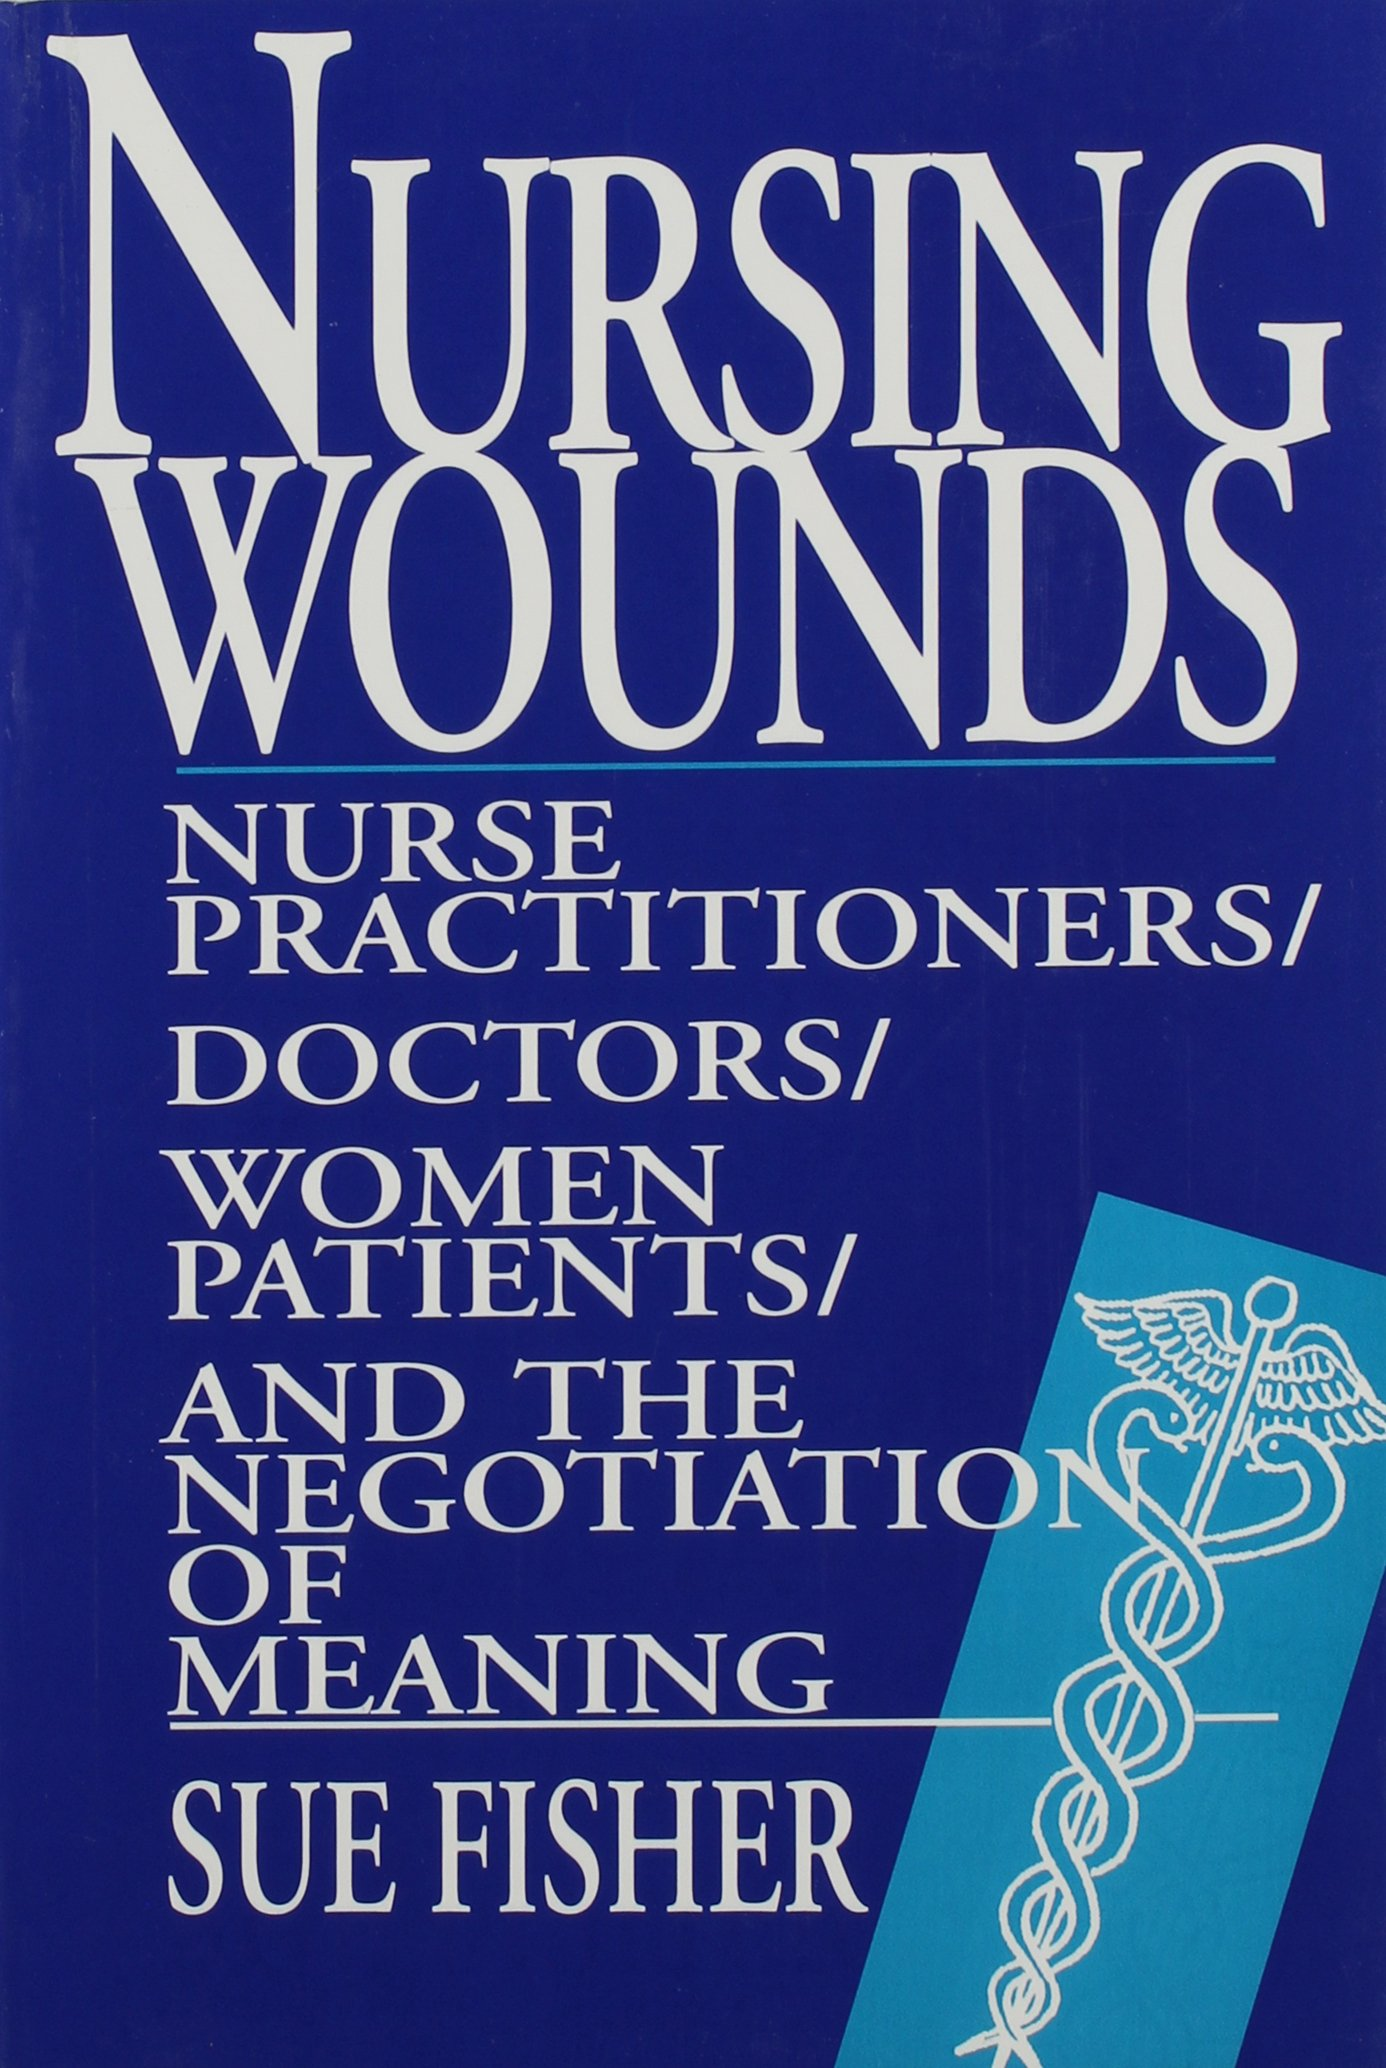 Nursing Wounds: Nurse Practitioners, Doctors, Women Patients and the Negotiation of Meaning